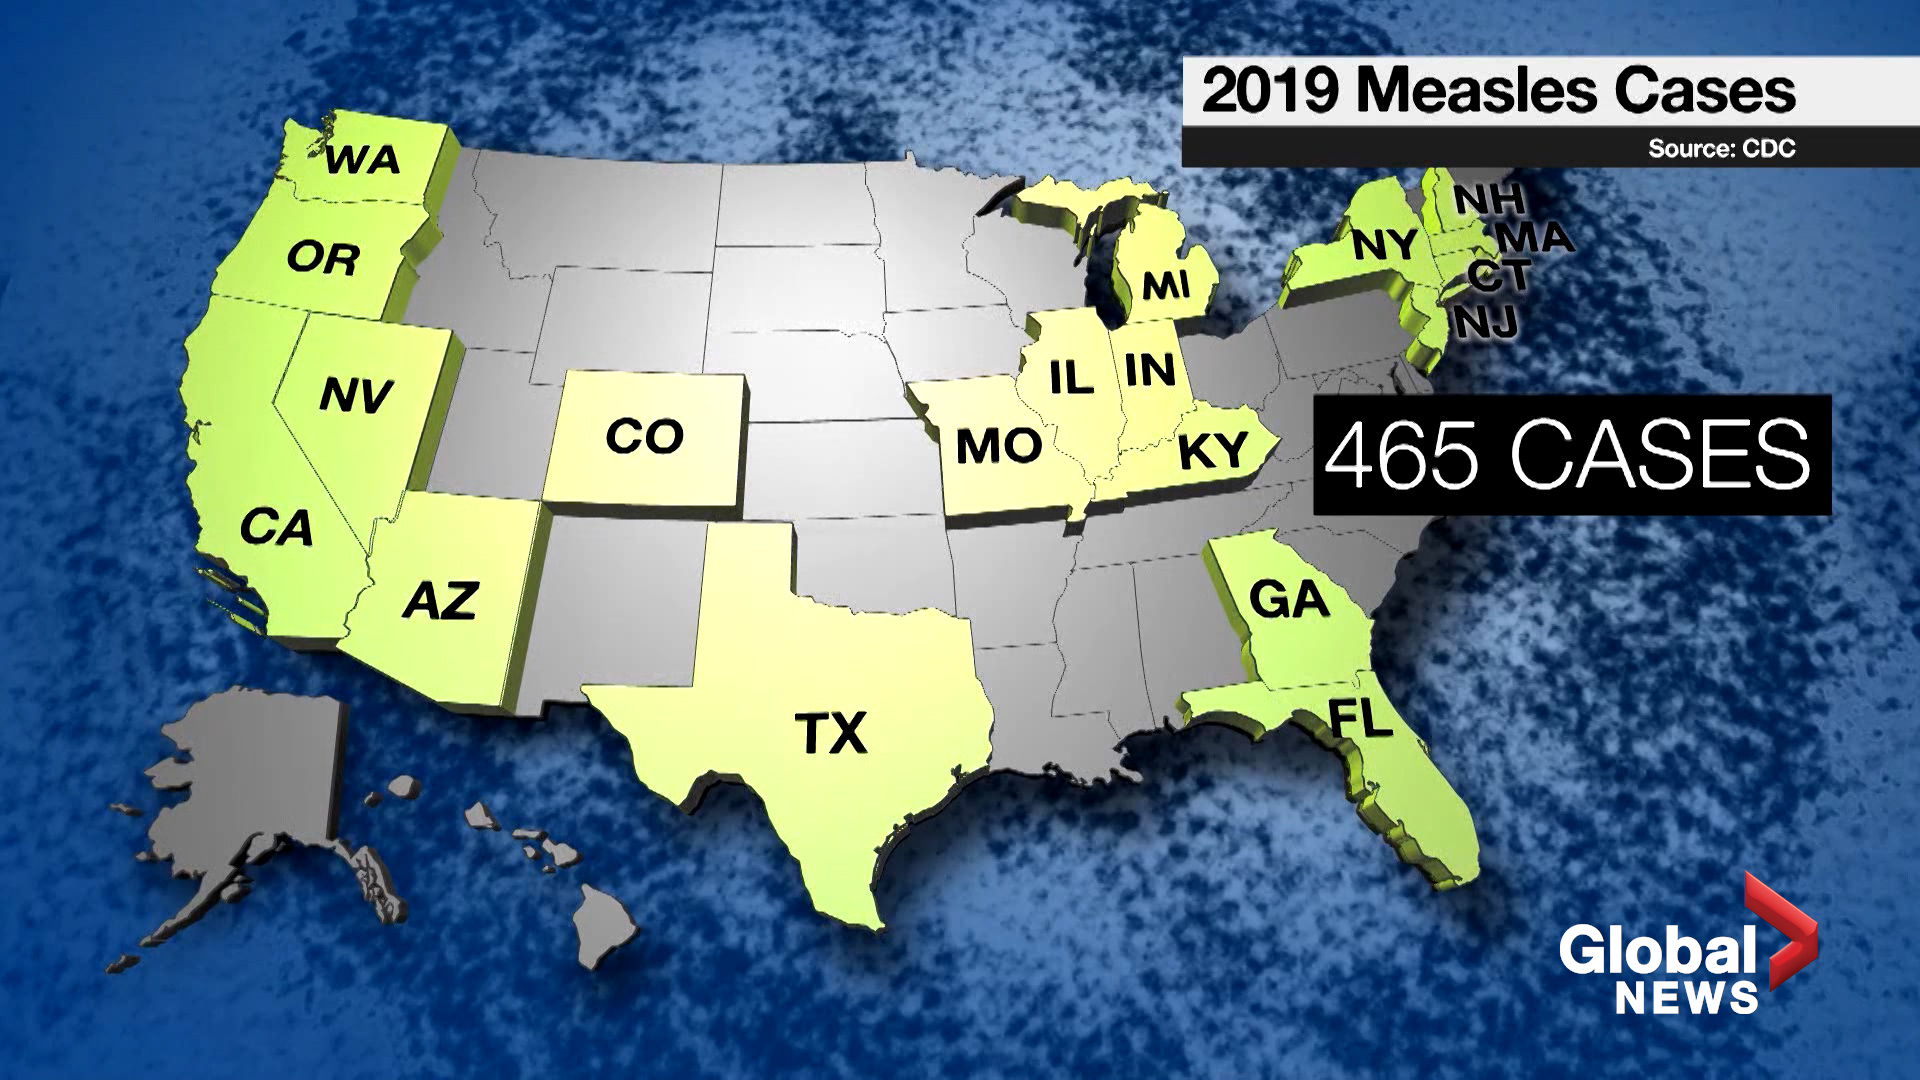 New measles cases are associated with three clusters: CDC